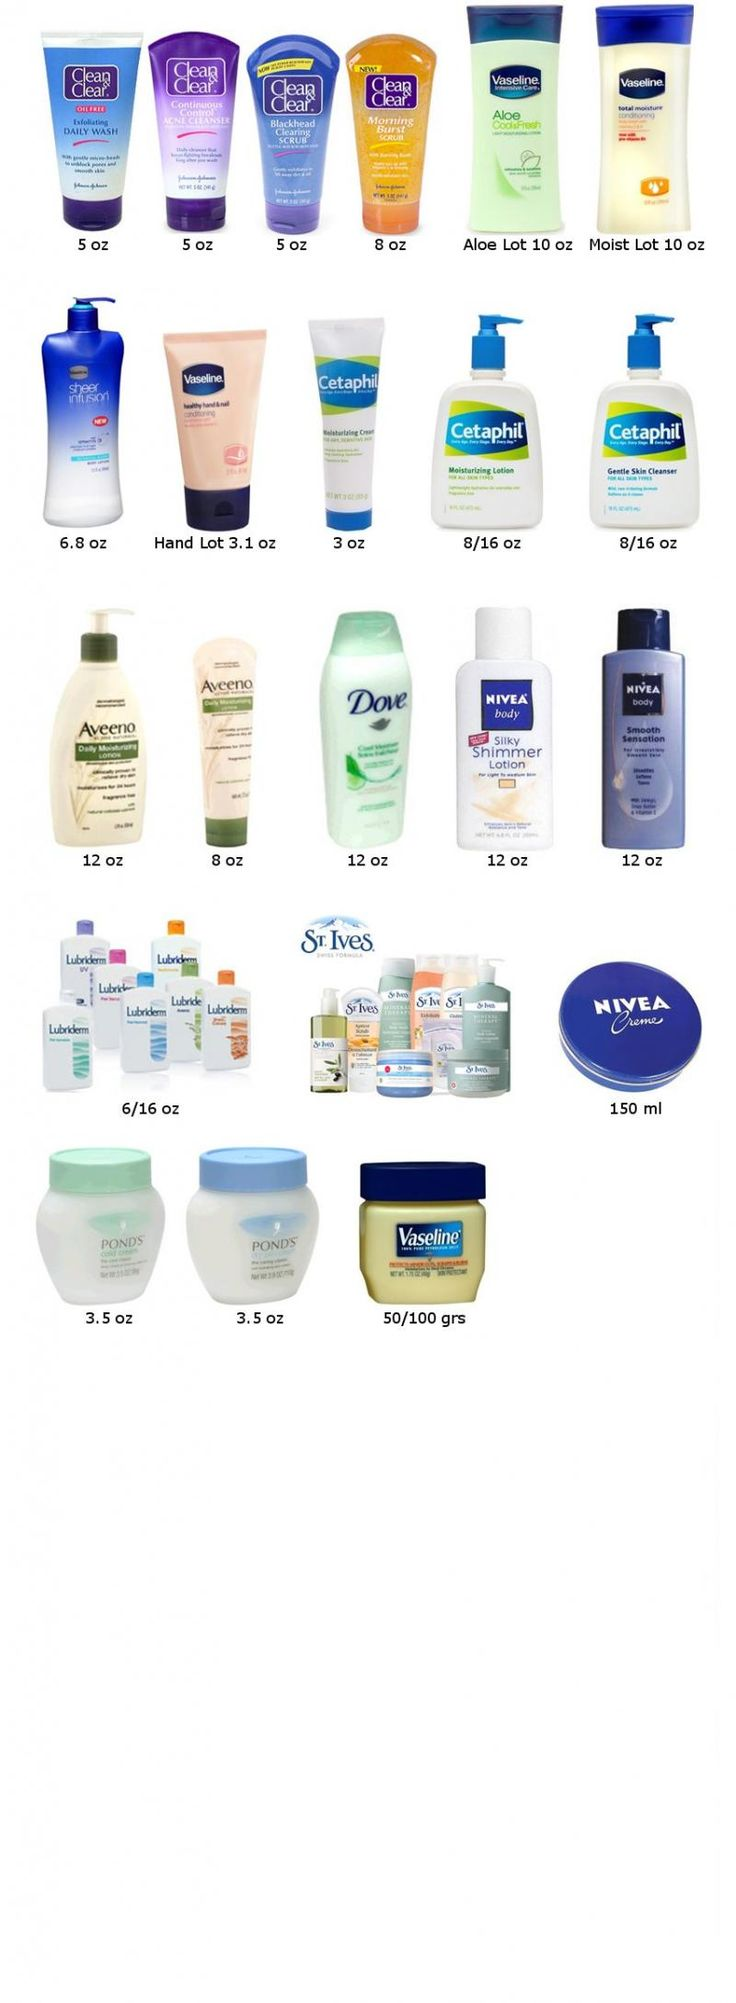 Us skin care products. Timetospa is your official ELEMIS retailer. Find the best selection of ELEMIS products, including ELEMIS spa. Buy now! Free samples with purchase.